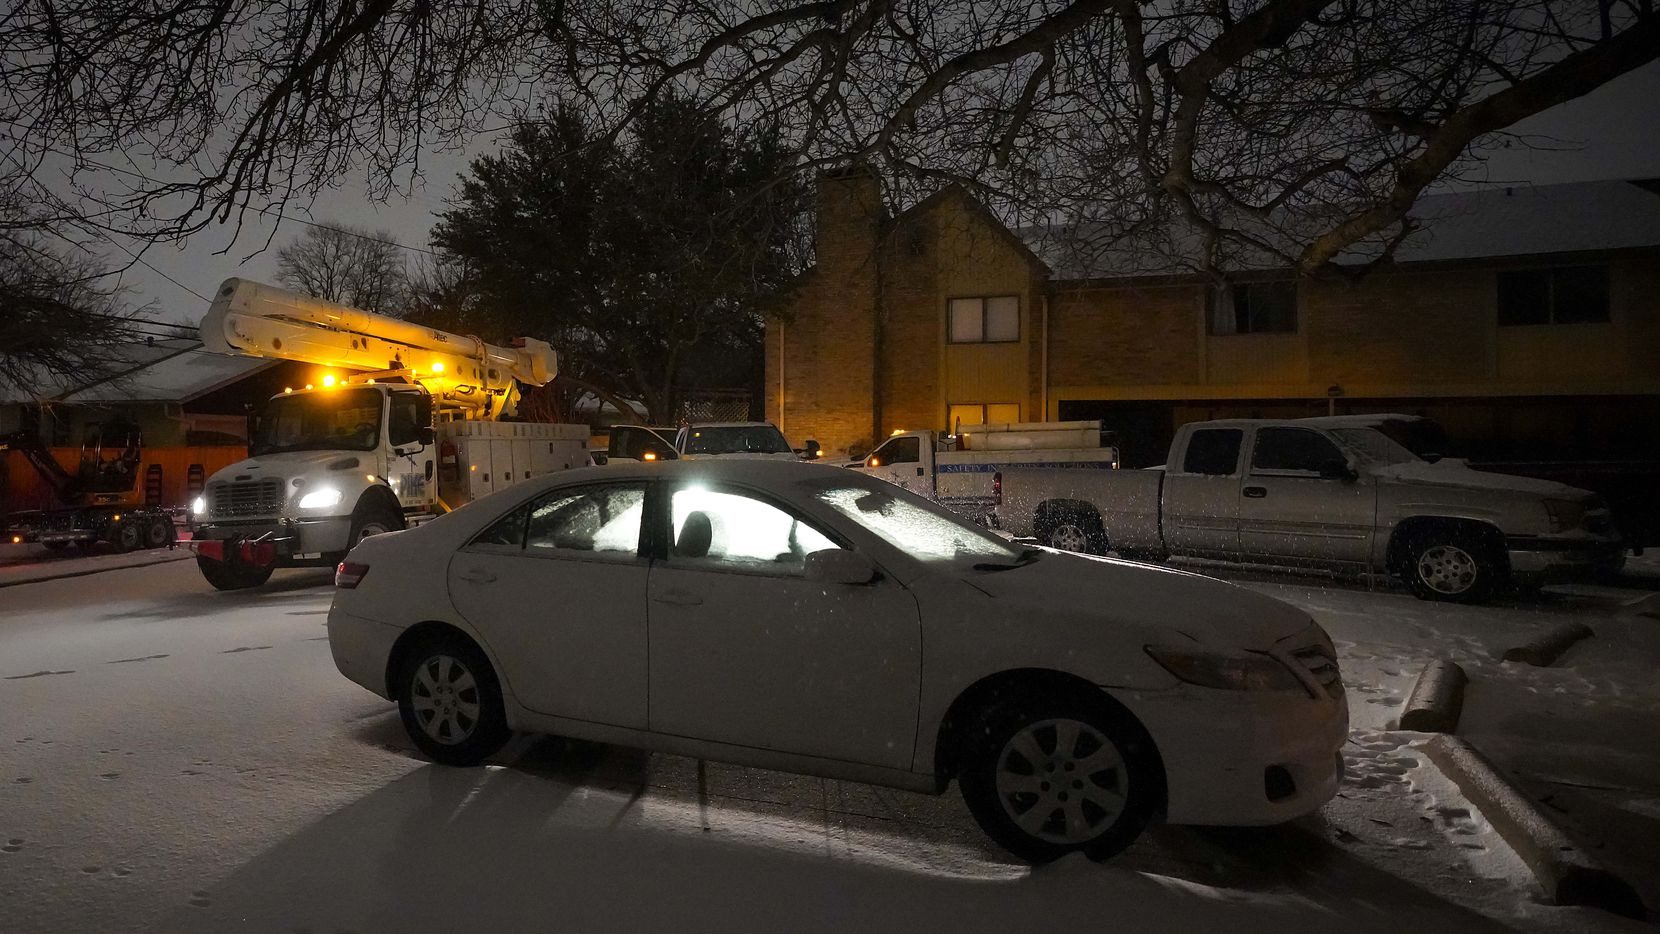 Power crews work in a darkened apartment complex after a second winter storm brought more snow and continued freezing temperatures, and continuing power outages, to North Texas on Tuesday, Feb. 16, 2021, in Richardson.